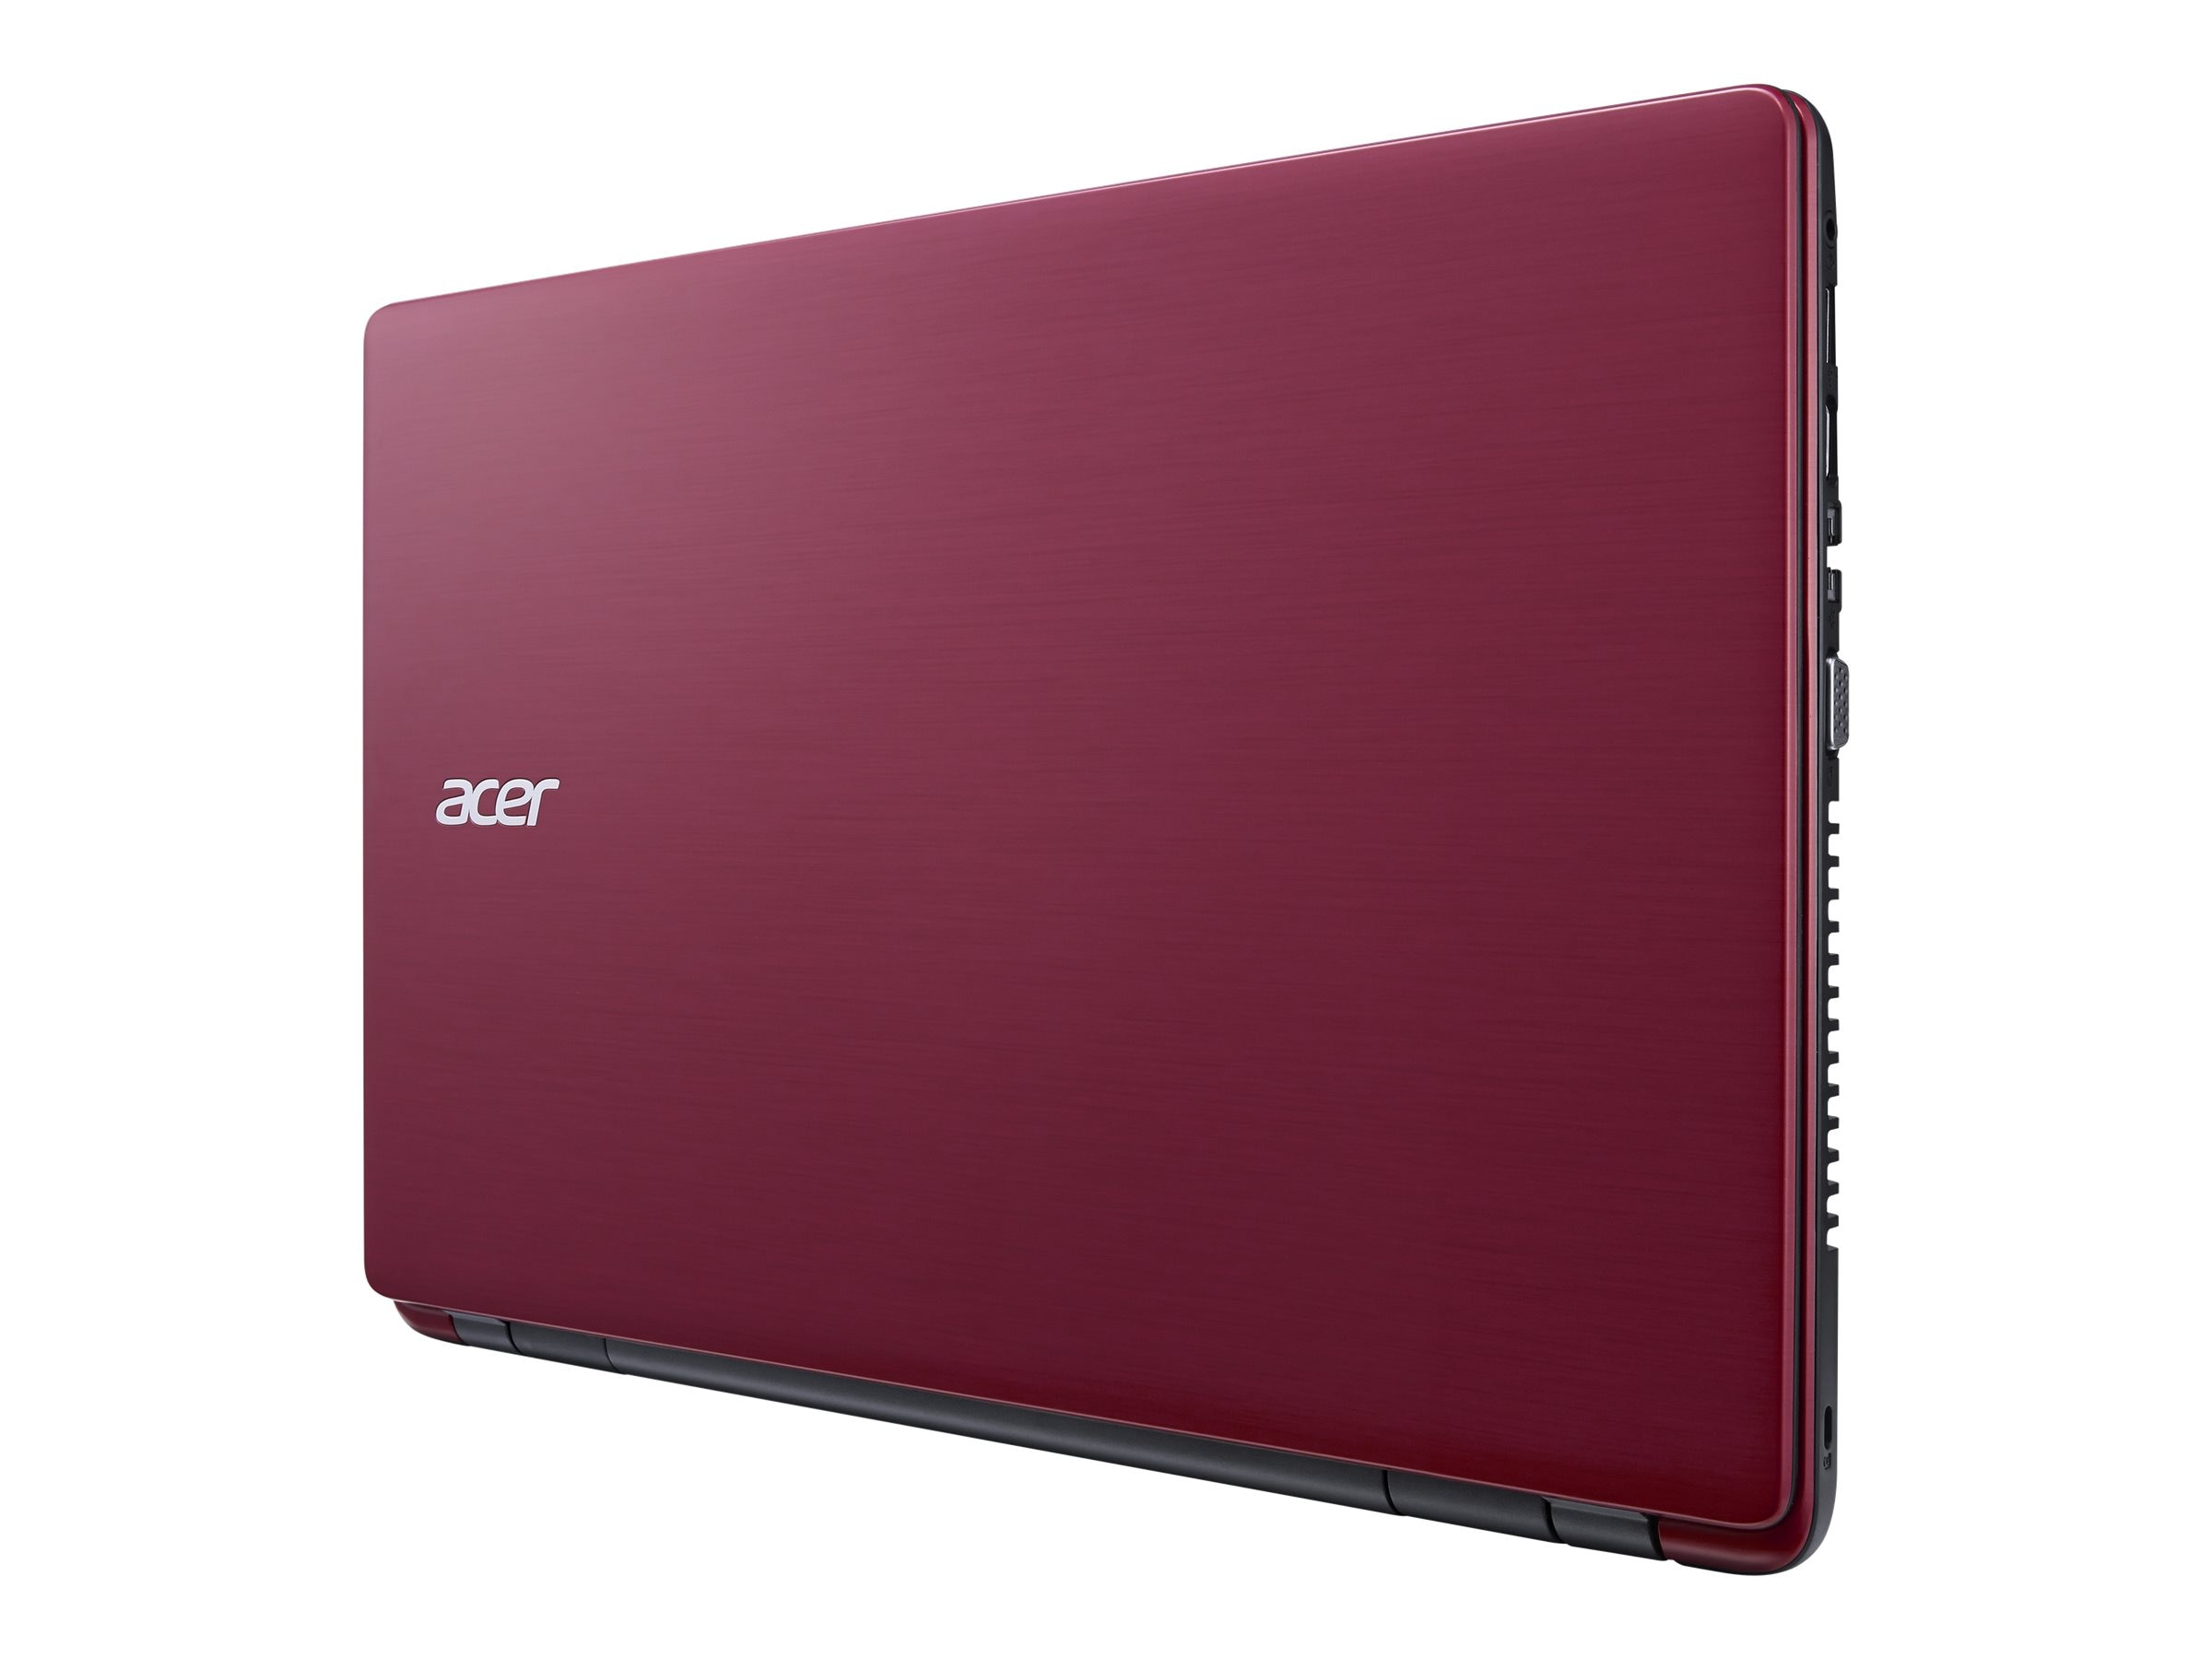 Acer E5-511 15.6 Notebook PC, NX.MPLAA.002, 17704039, Notebooks